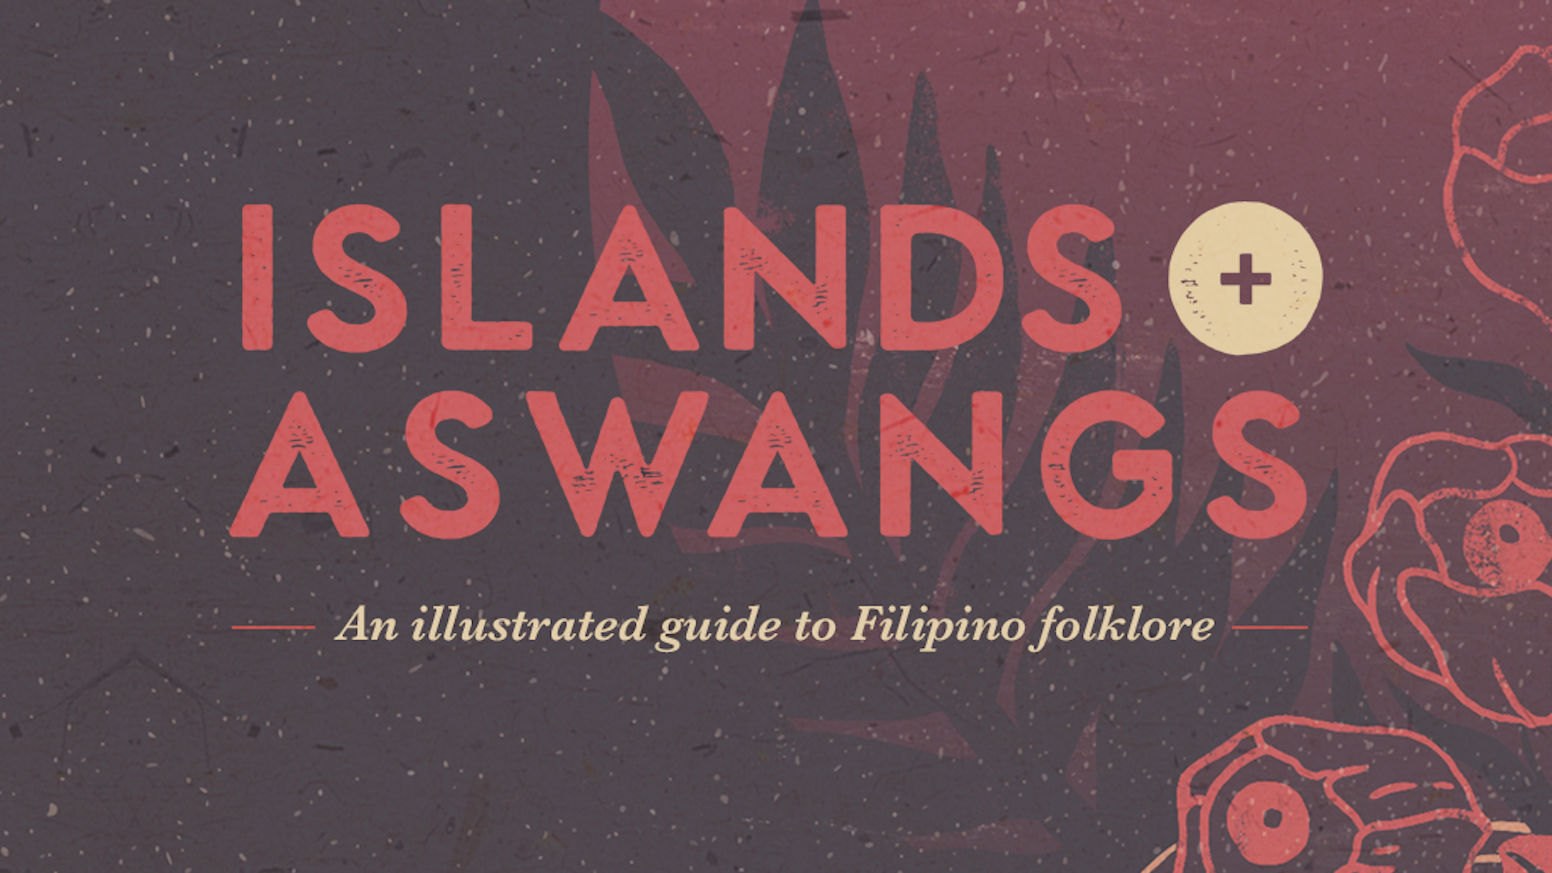 An illustrated Filipino folklore book for Dungeons & Dragons.